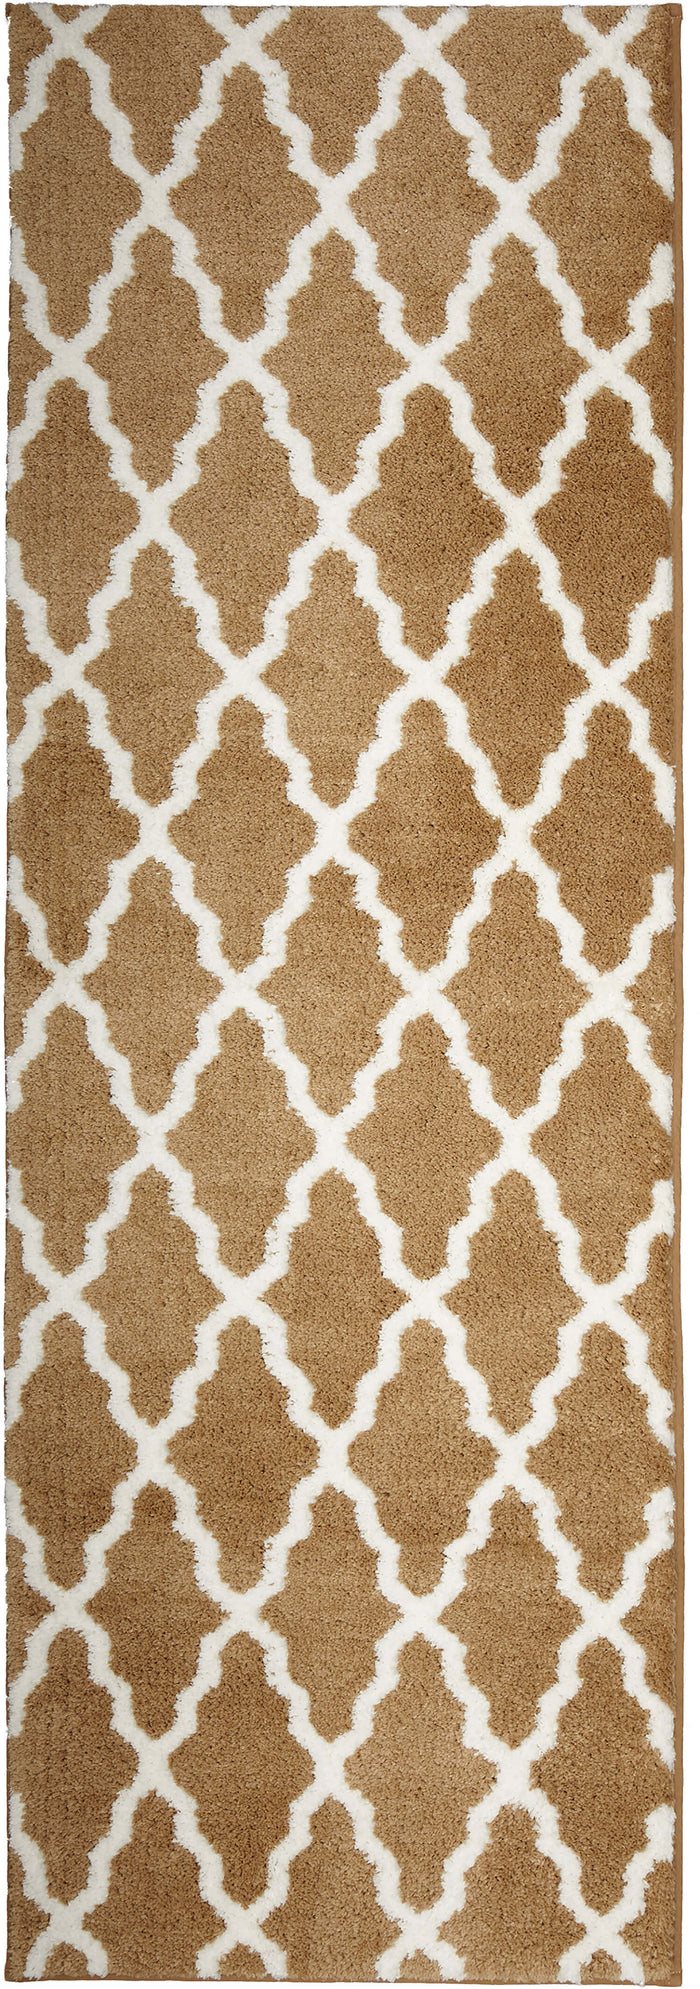 Compass Beech Brown Bath Mat